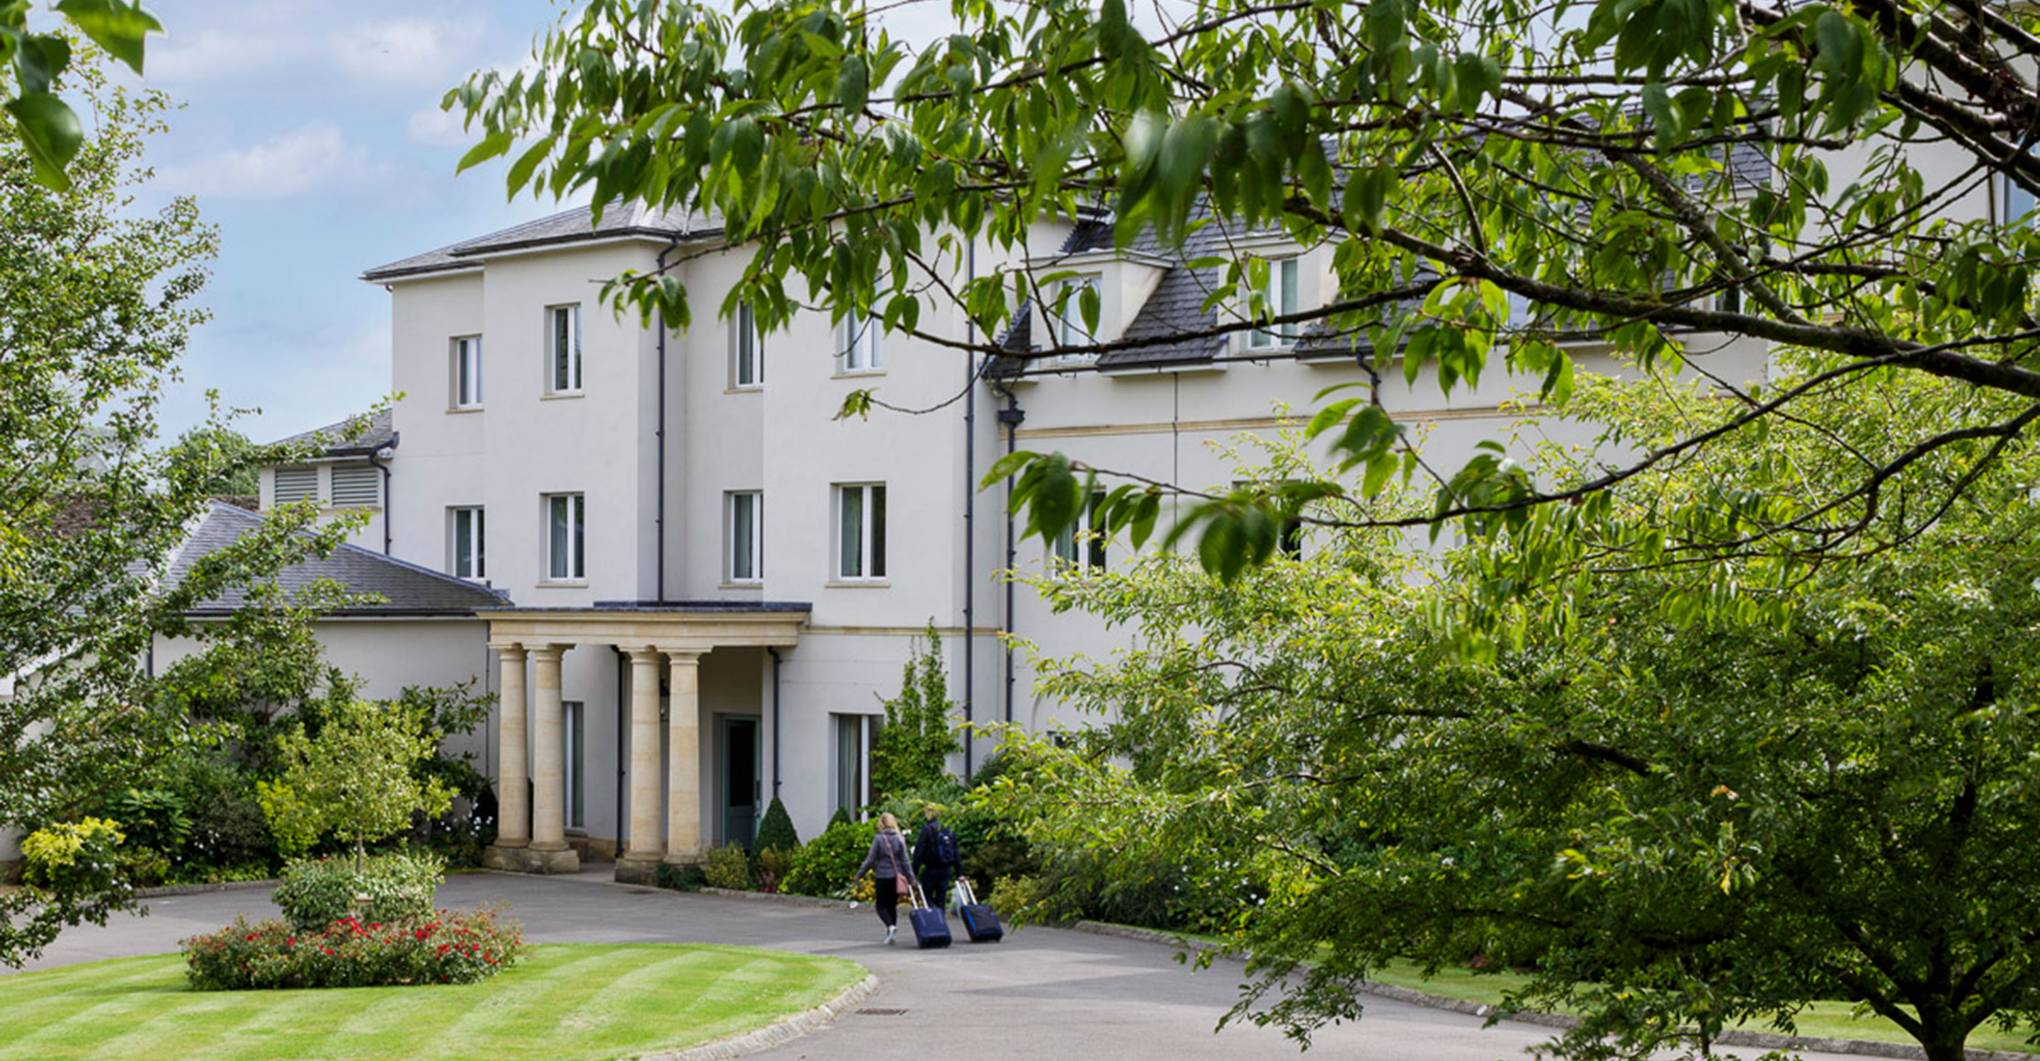 Win a country getaway at Bowood Hotel in Wiltshire